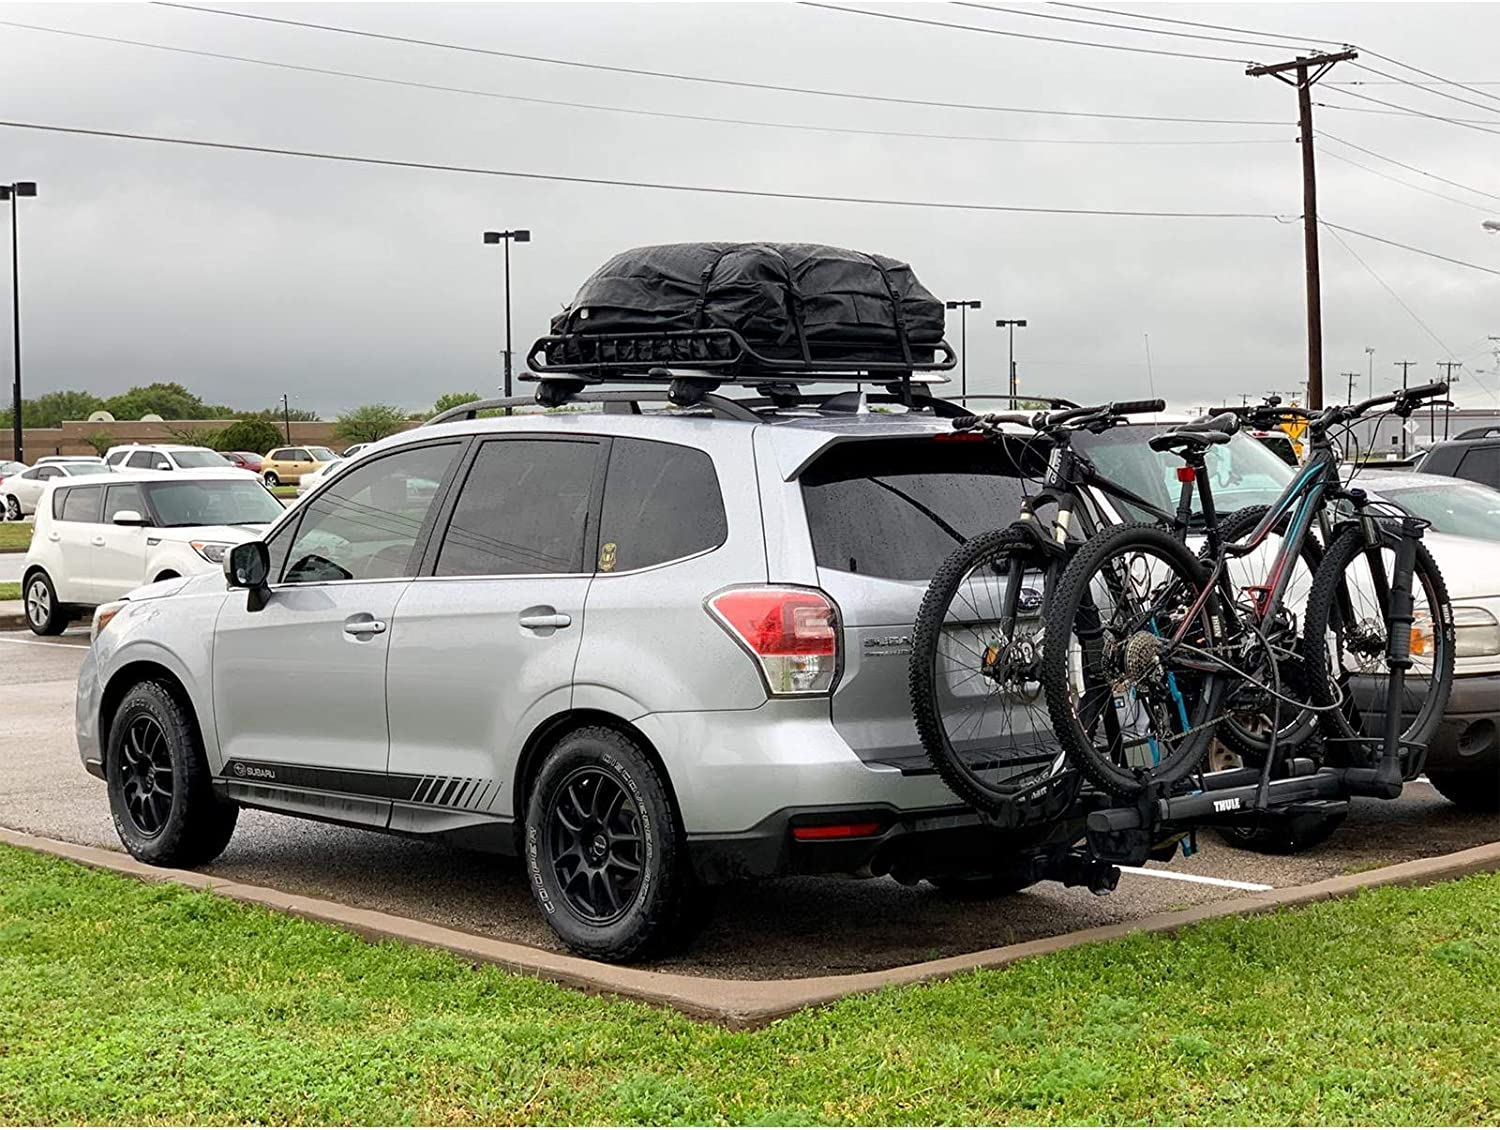 Side Rails//Cross Bars//No Rack LINGVUM Rooftop Cargo Carrier Suitable for All Cars 19 Cubic Feet Soft-Shell Waterproof Roof Top Carrier Roofbag with Tie Down Straps and Protective Mat